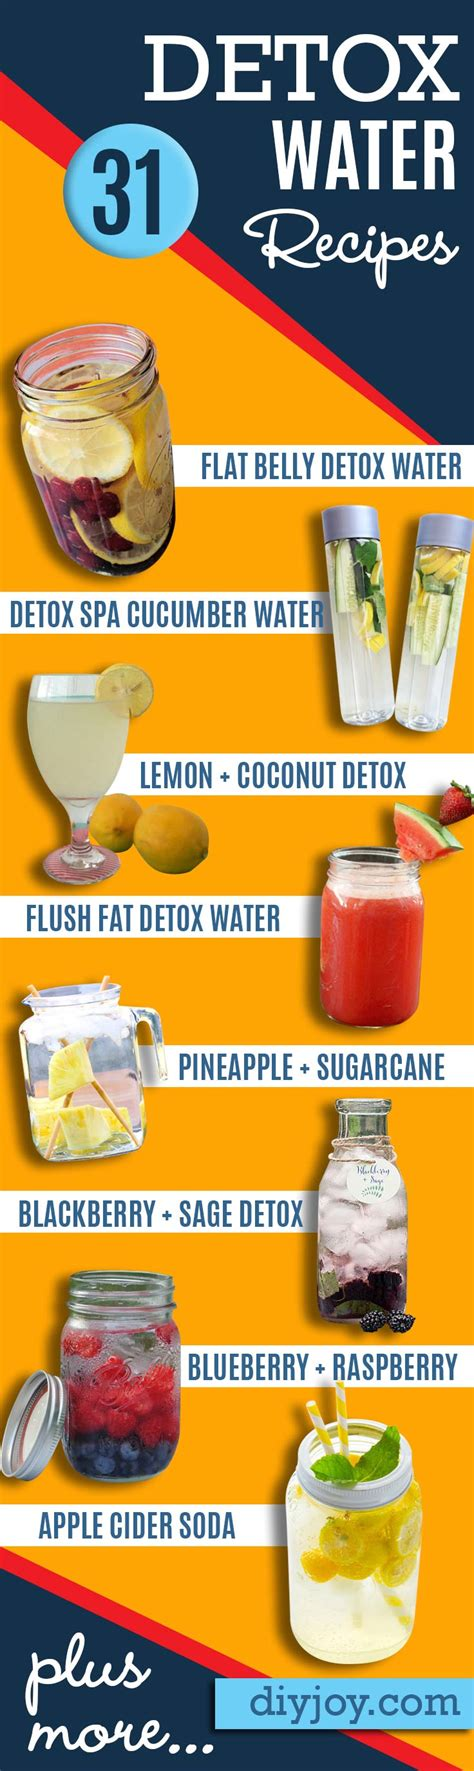 Detox Waters Diy by 31 Diy Detox Water Recipes Drinks To Start 2016 Right